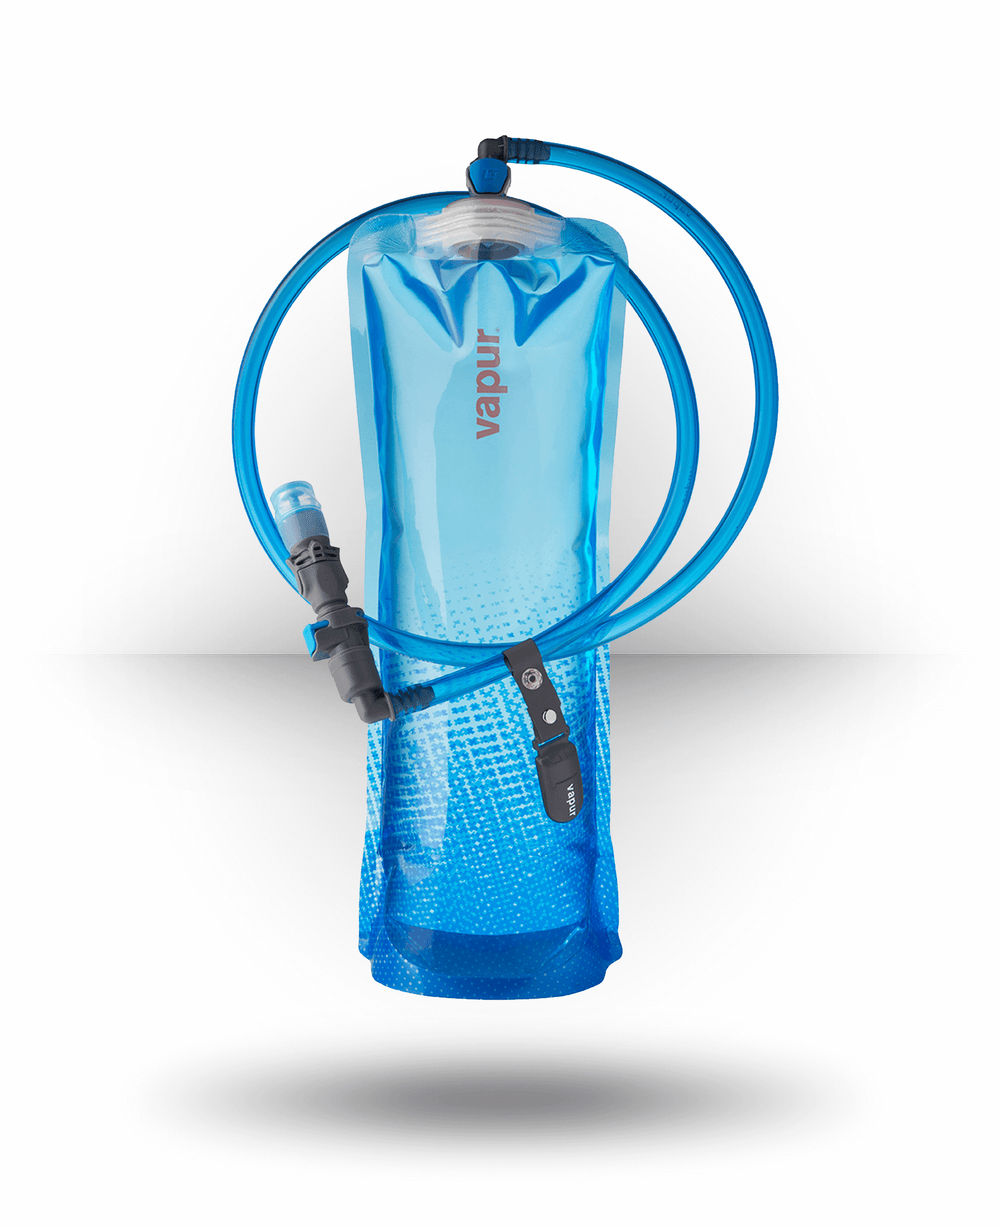 Vapur Drinklink Hydration Tube System With 1.5L Anti-Bottle Shades, Translucent Blue, 1.5 l